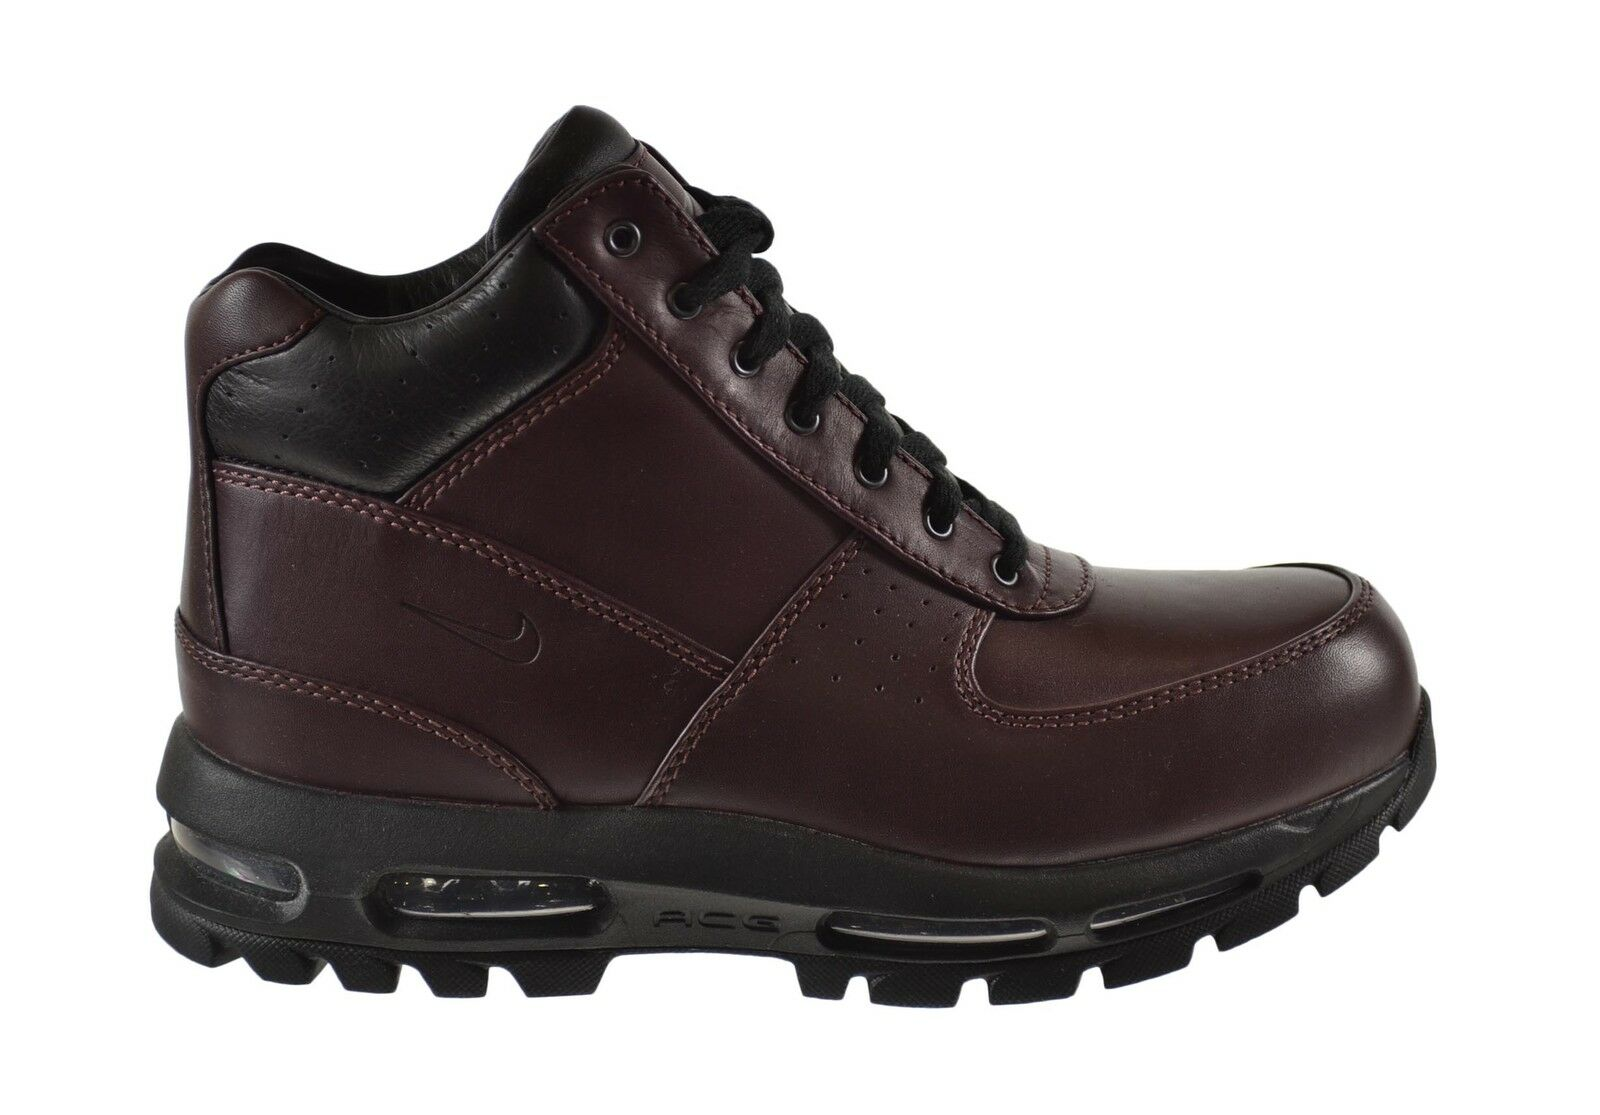 Nike ACG Air Max Goadome Men's Boots Deep Burgundy/Black 865031-601 New shoes for men and women, limited time discount